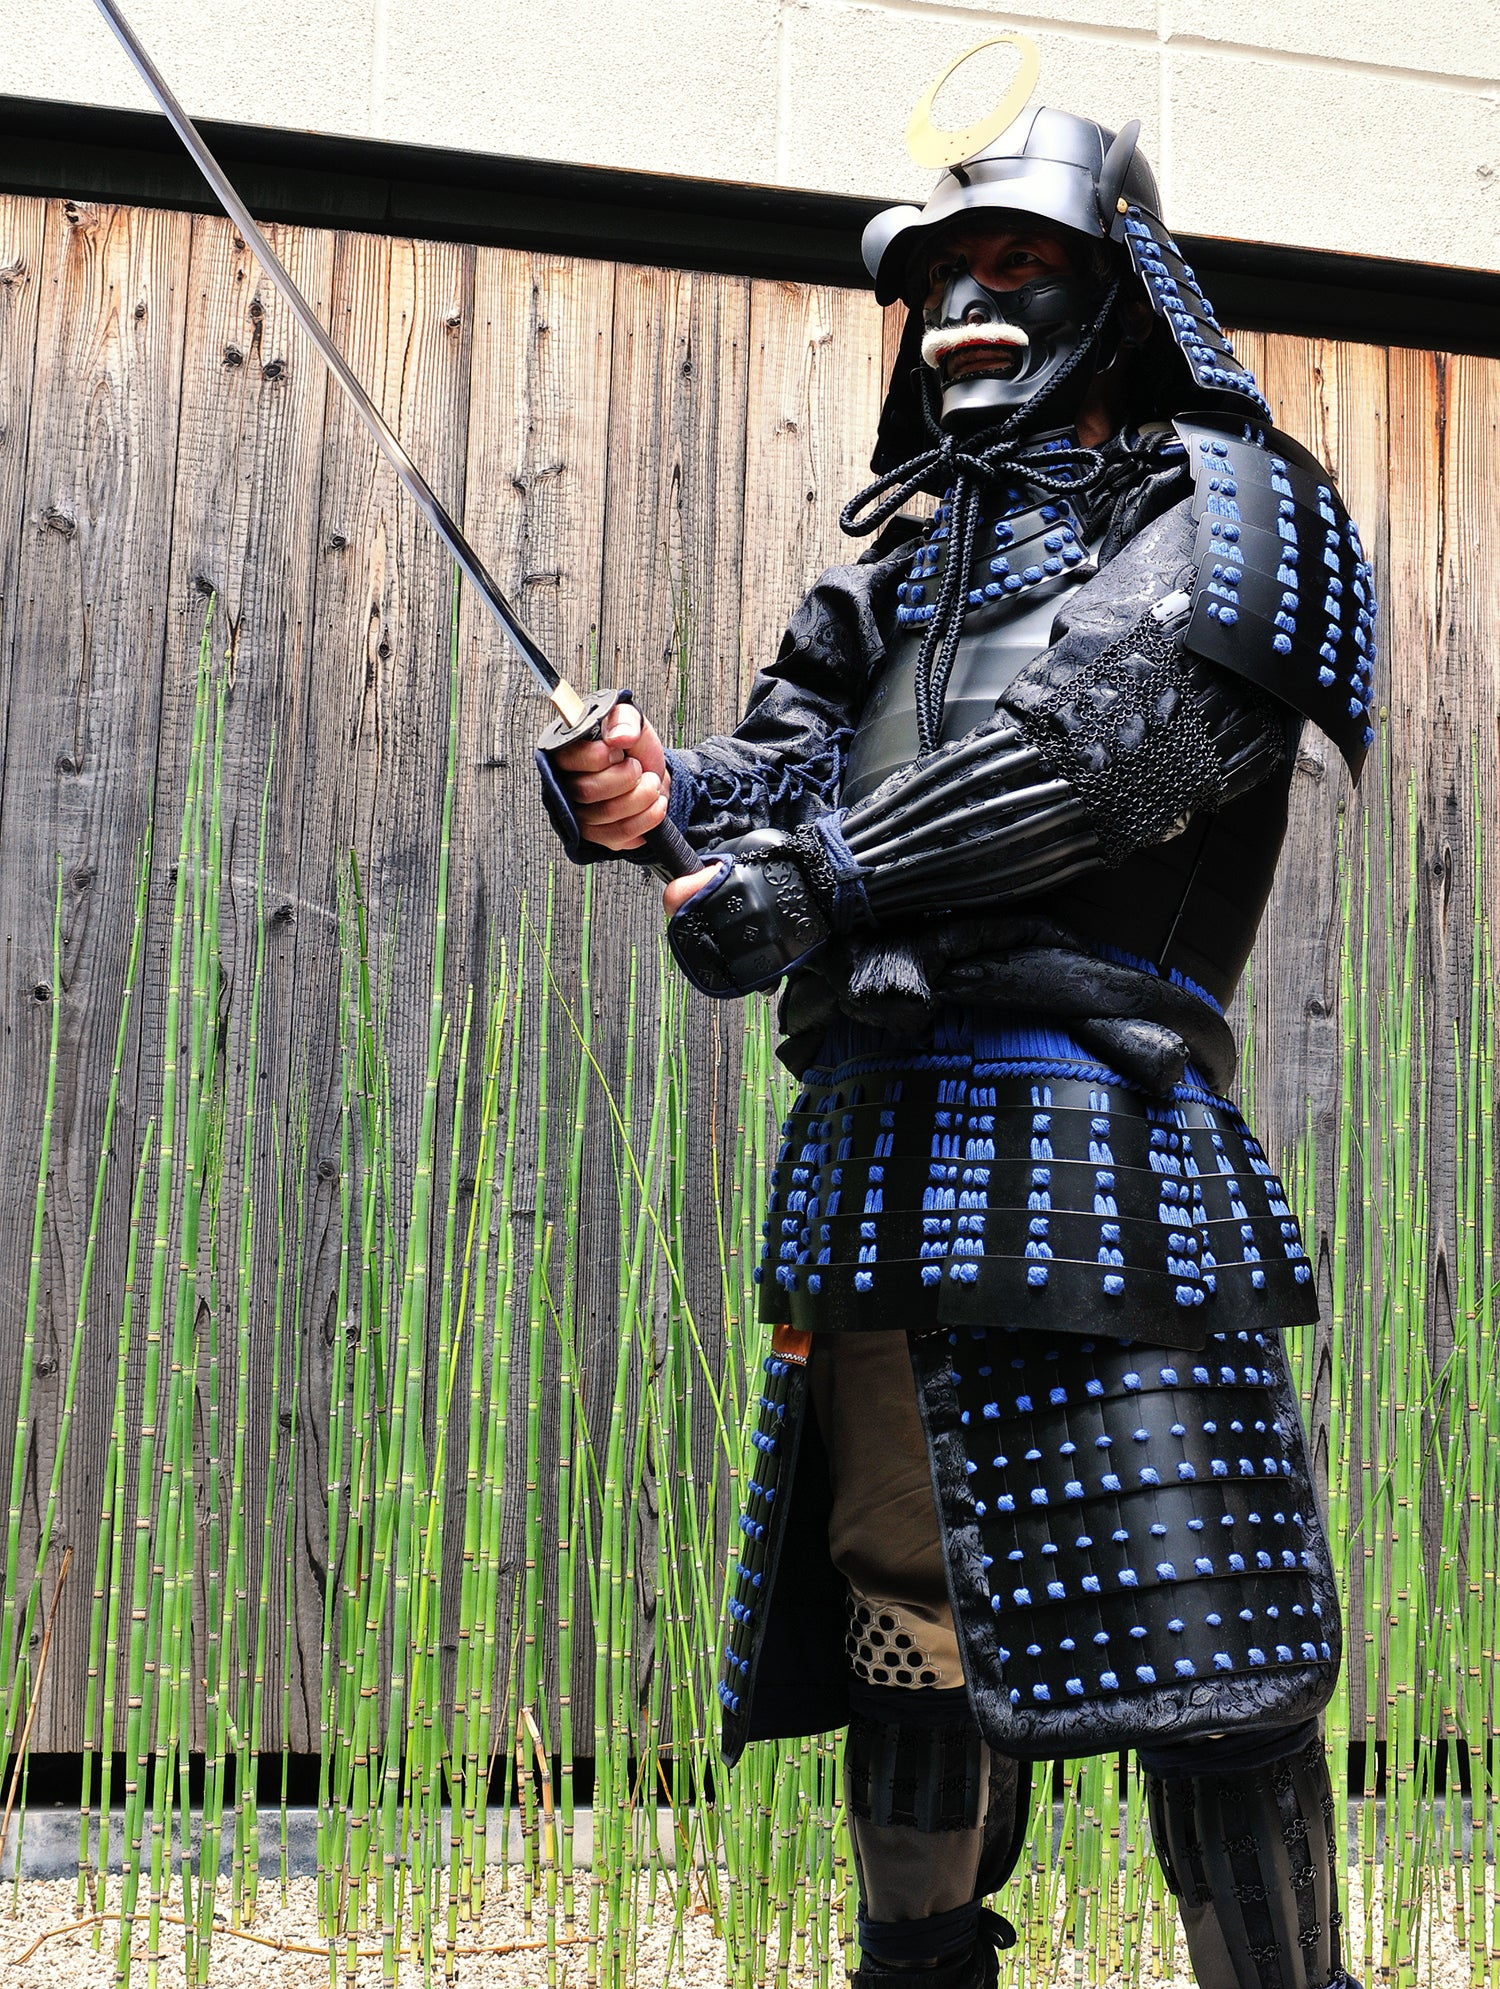 Yoroi-worn Samurai with Japanese sword